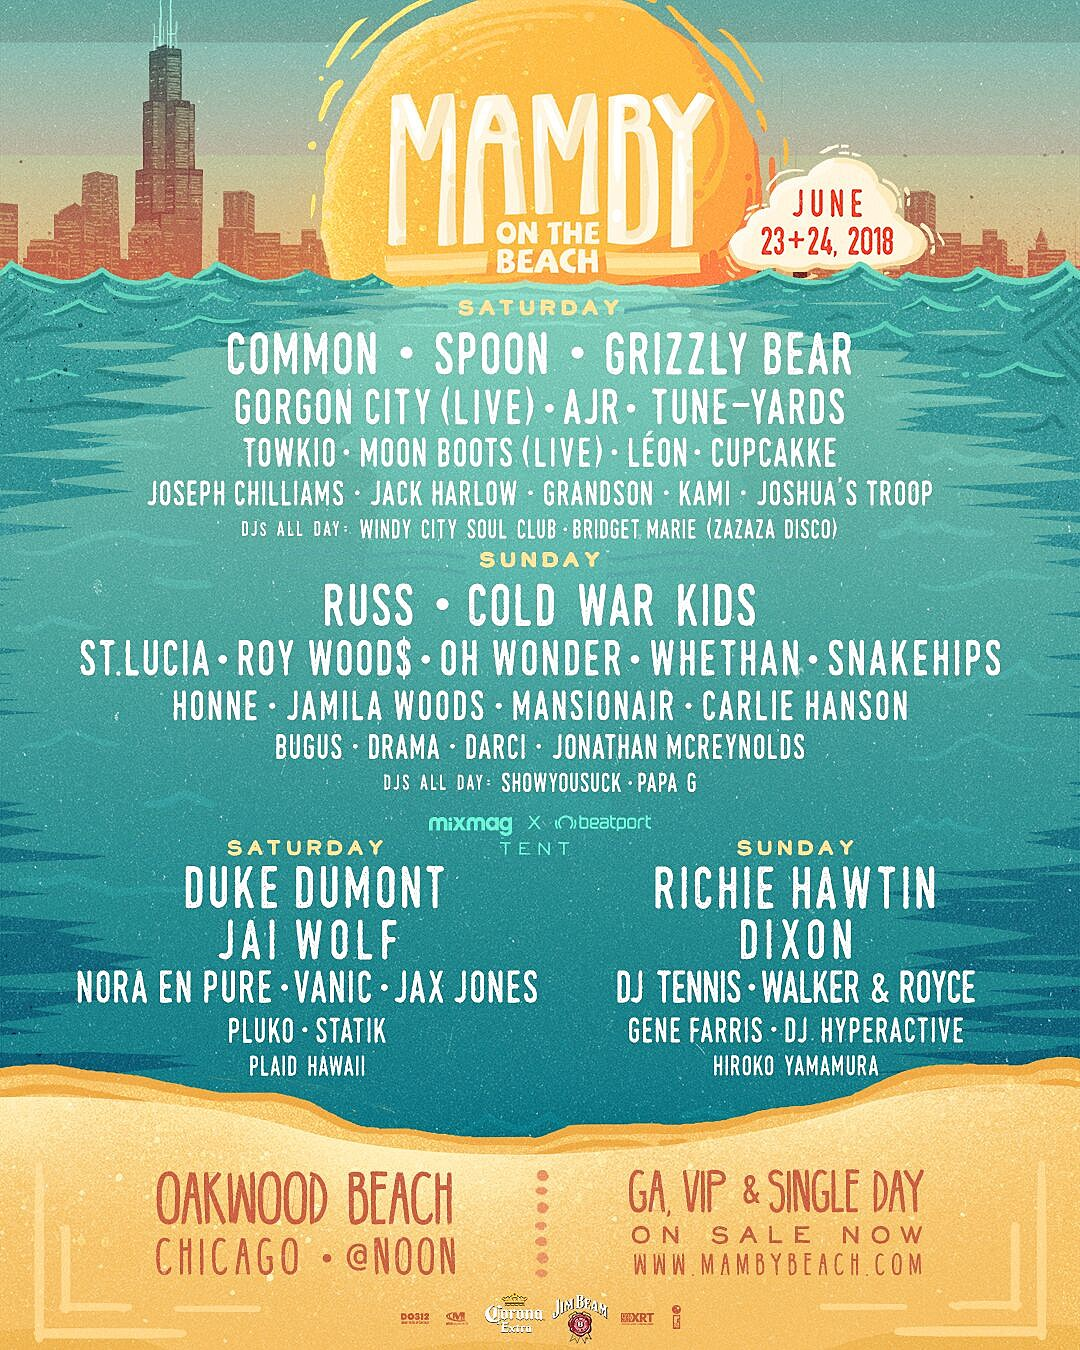 Mamby On The Beach 2018 lineup